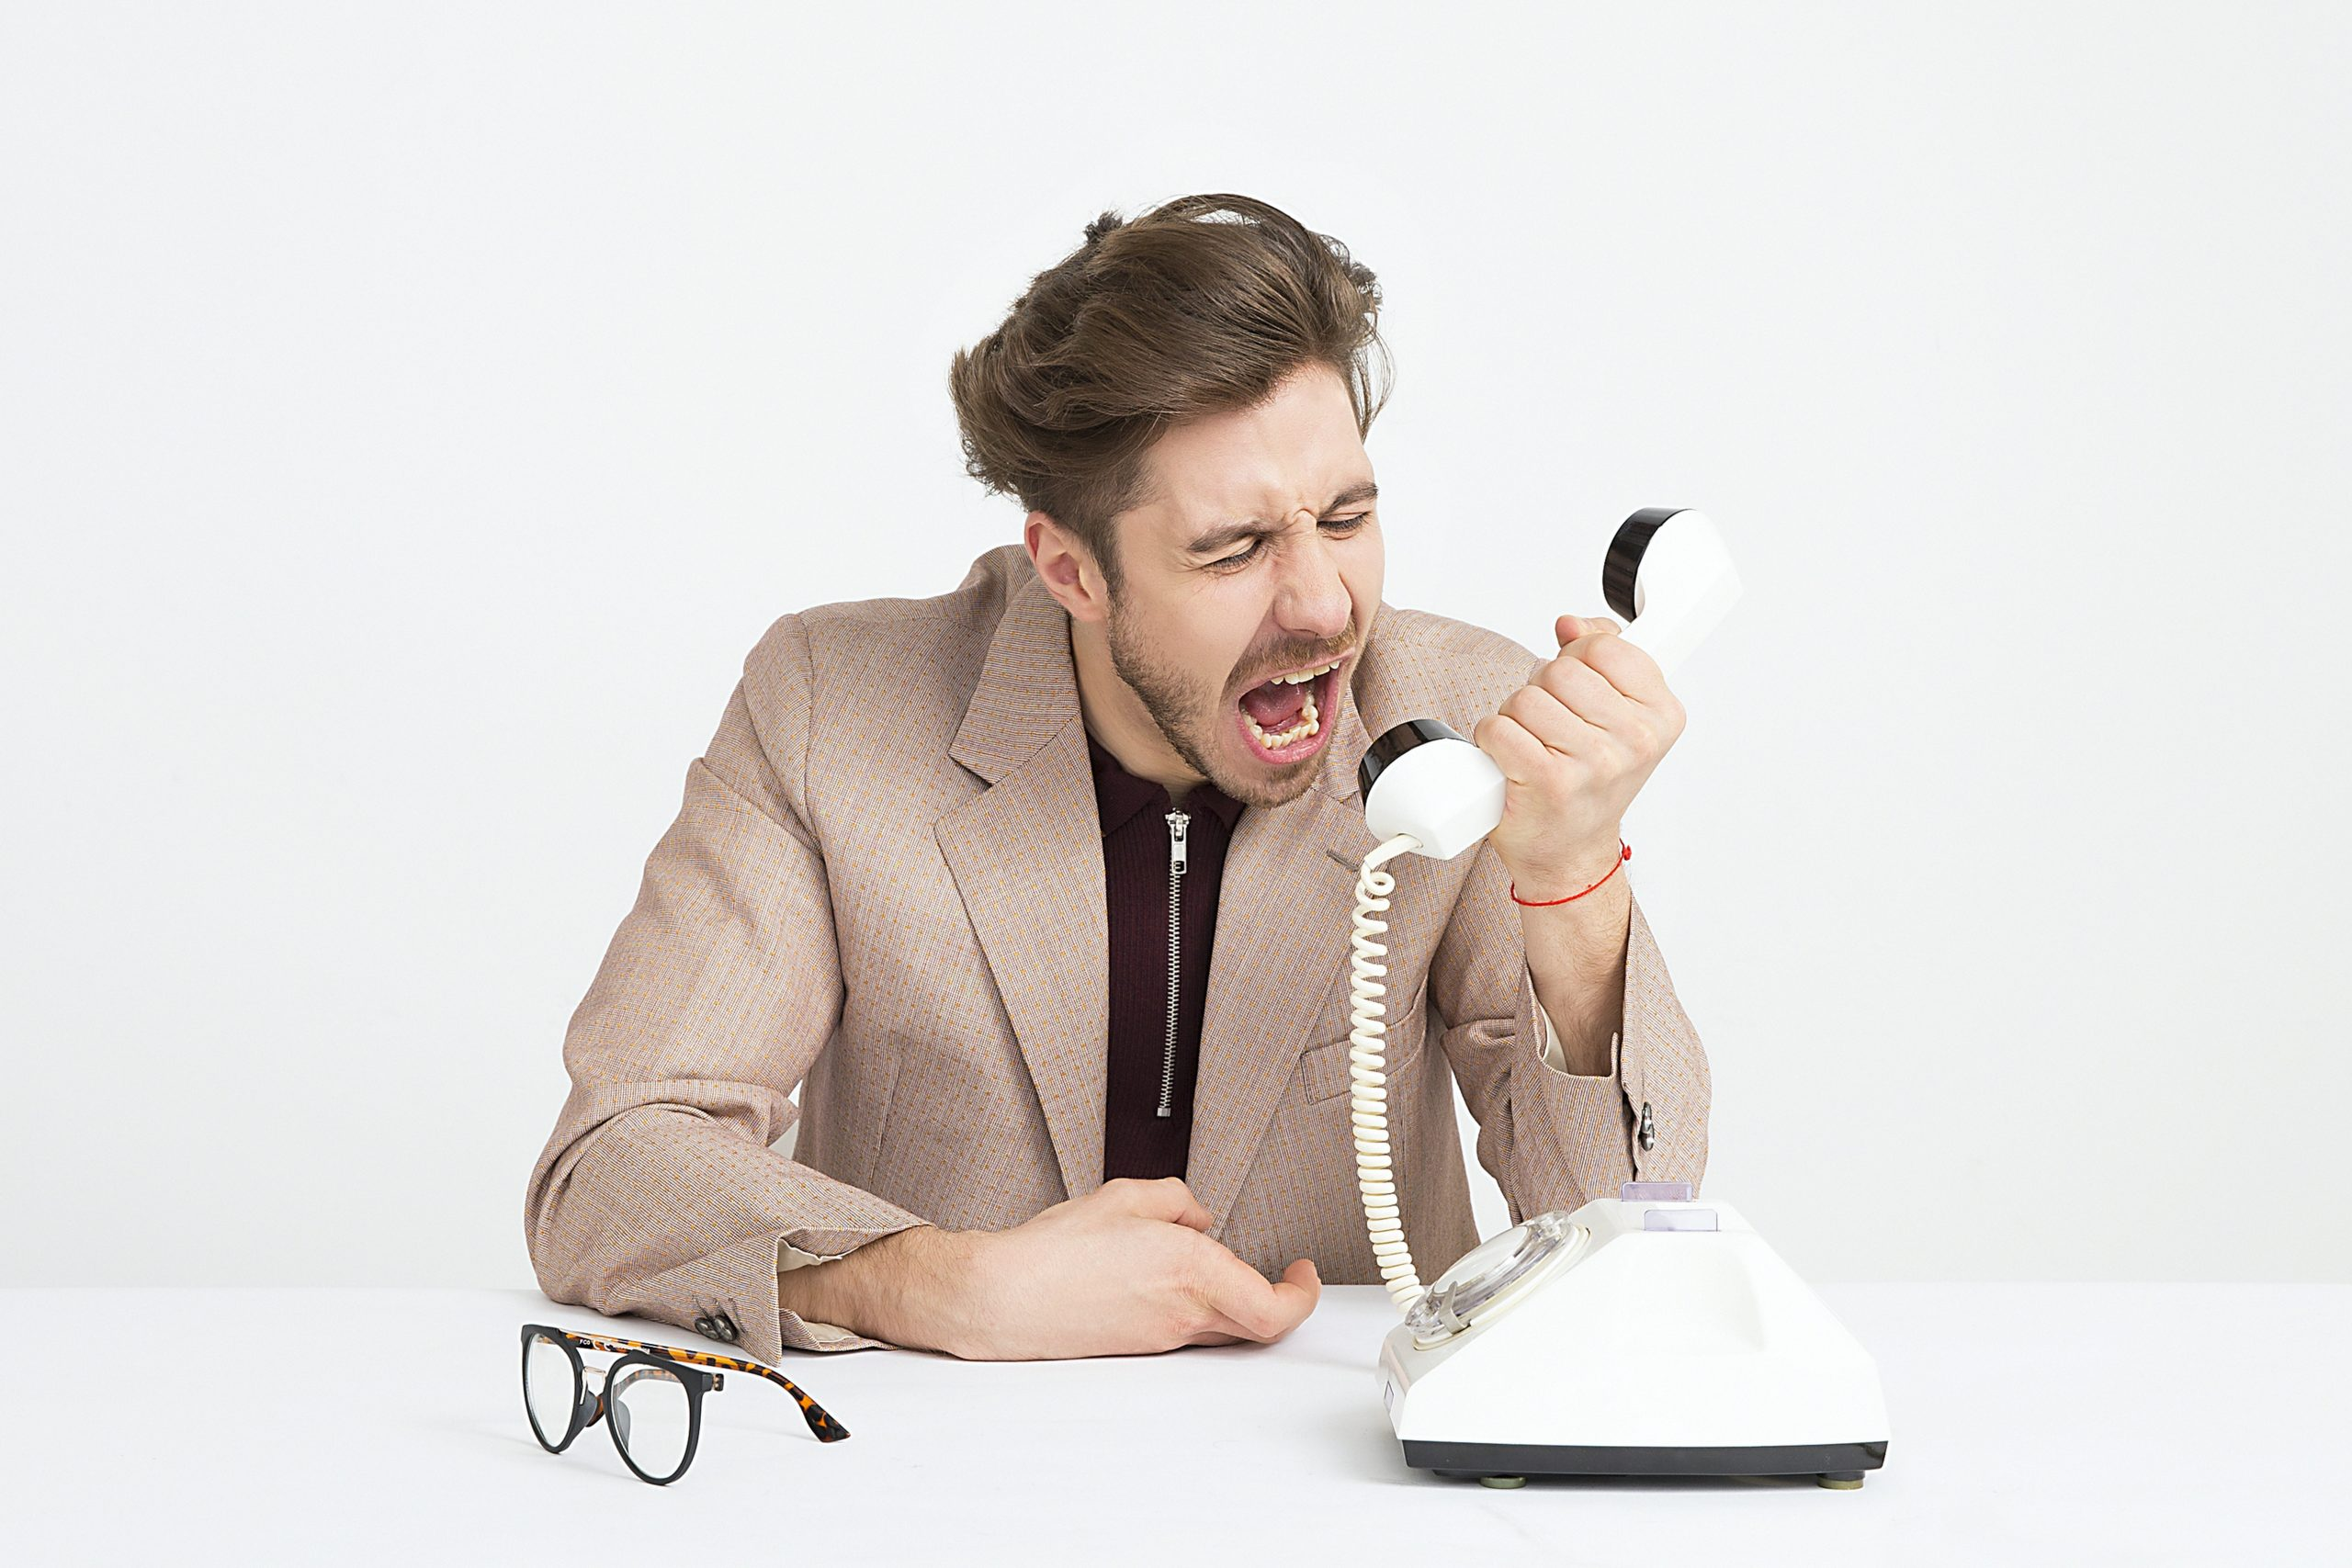 Violation Of Consumer Rights – Do Not Call Complaint